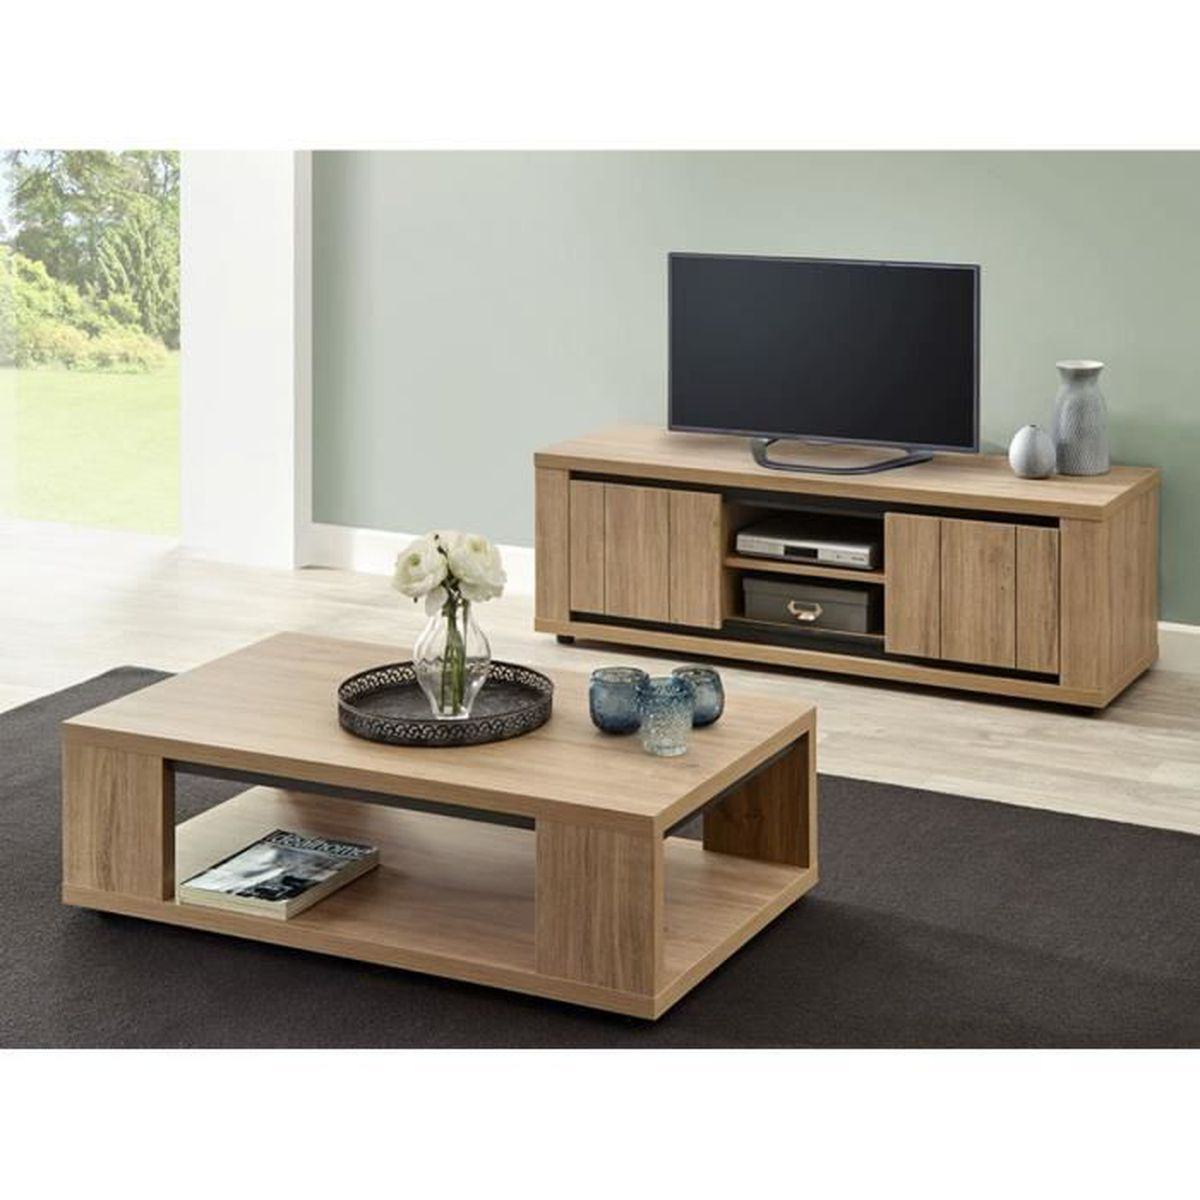 kirsten ensemble table basse et meuble tv prix pas. Black Bedroom Furniture Sets. Home Design Ideas